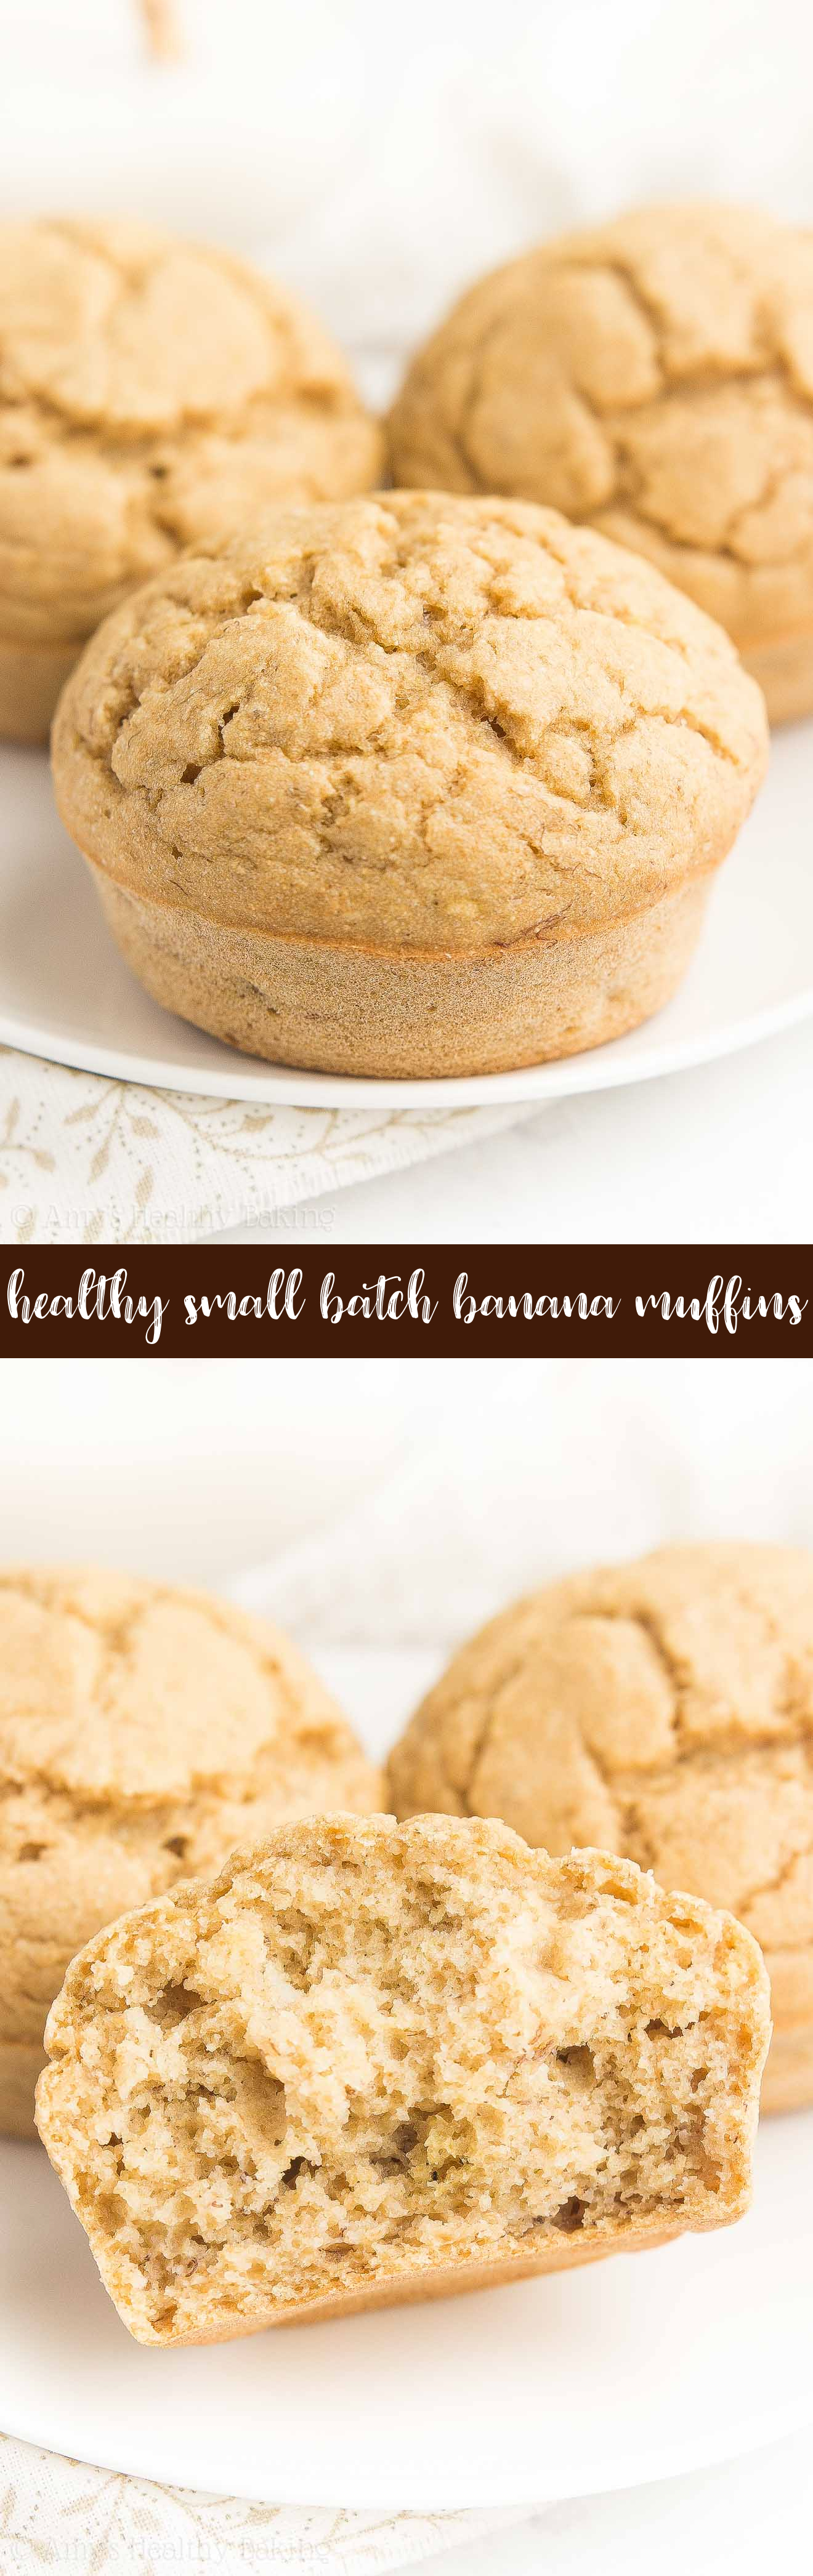 The BEST Healthy Low-Calorie Banana Muffins Recipe